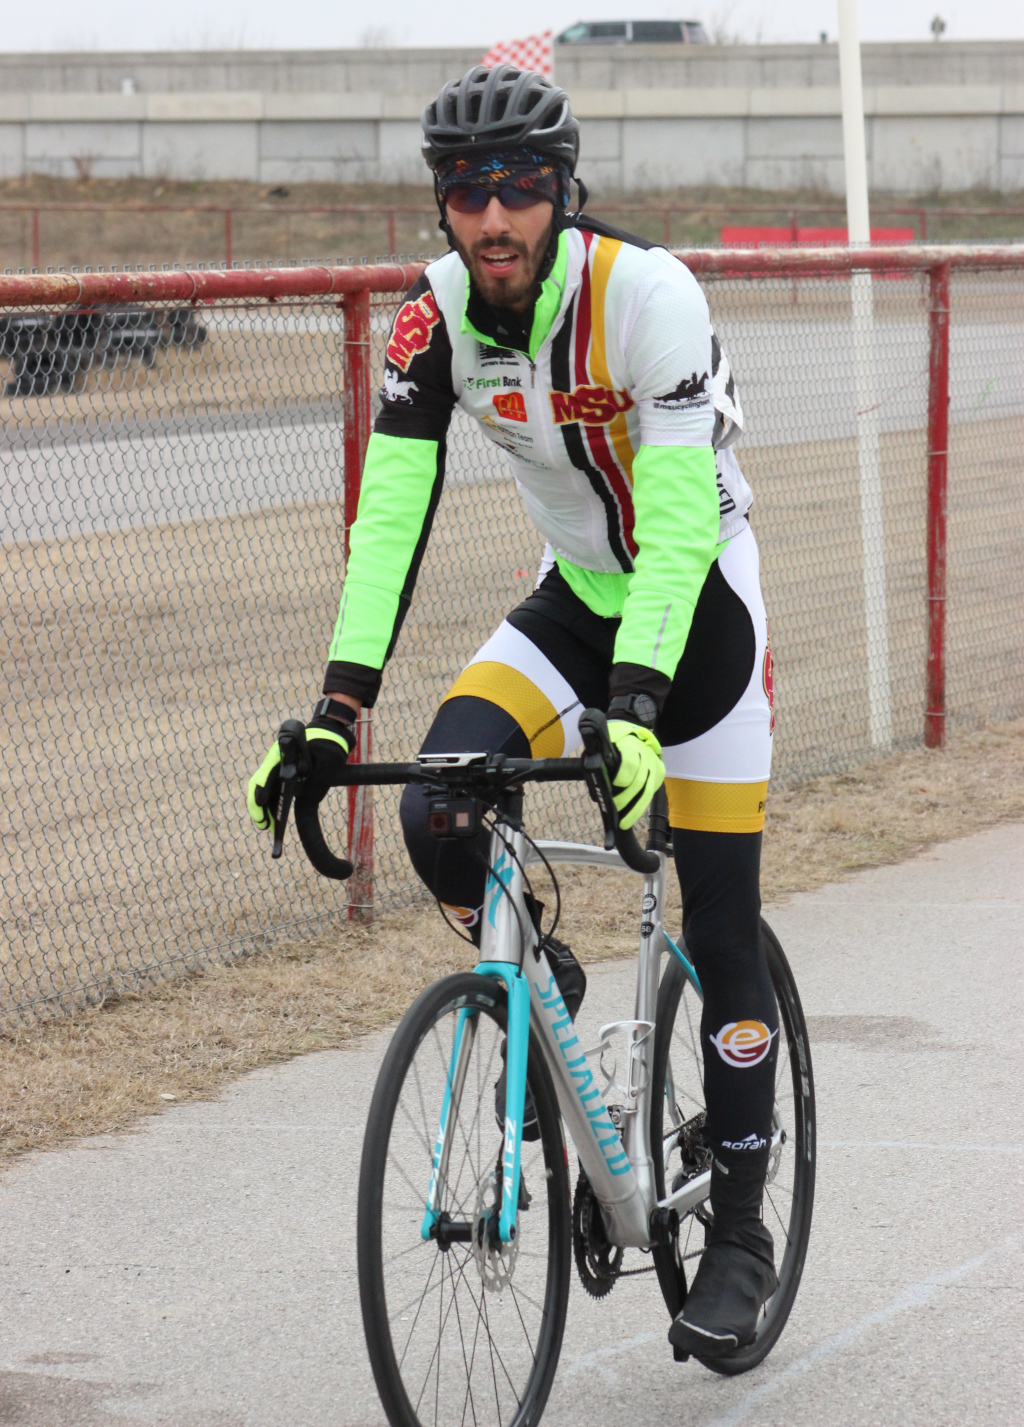 Ramon+Rueda%2C+exercise+physiology+graduate+warms+down+after+finishing+4th+in+men%27s+%27C%27+criterium+race+in+Norman%2C+Oklahoma.+Photo+by+Sharome+Burton.+March+10.